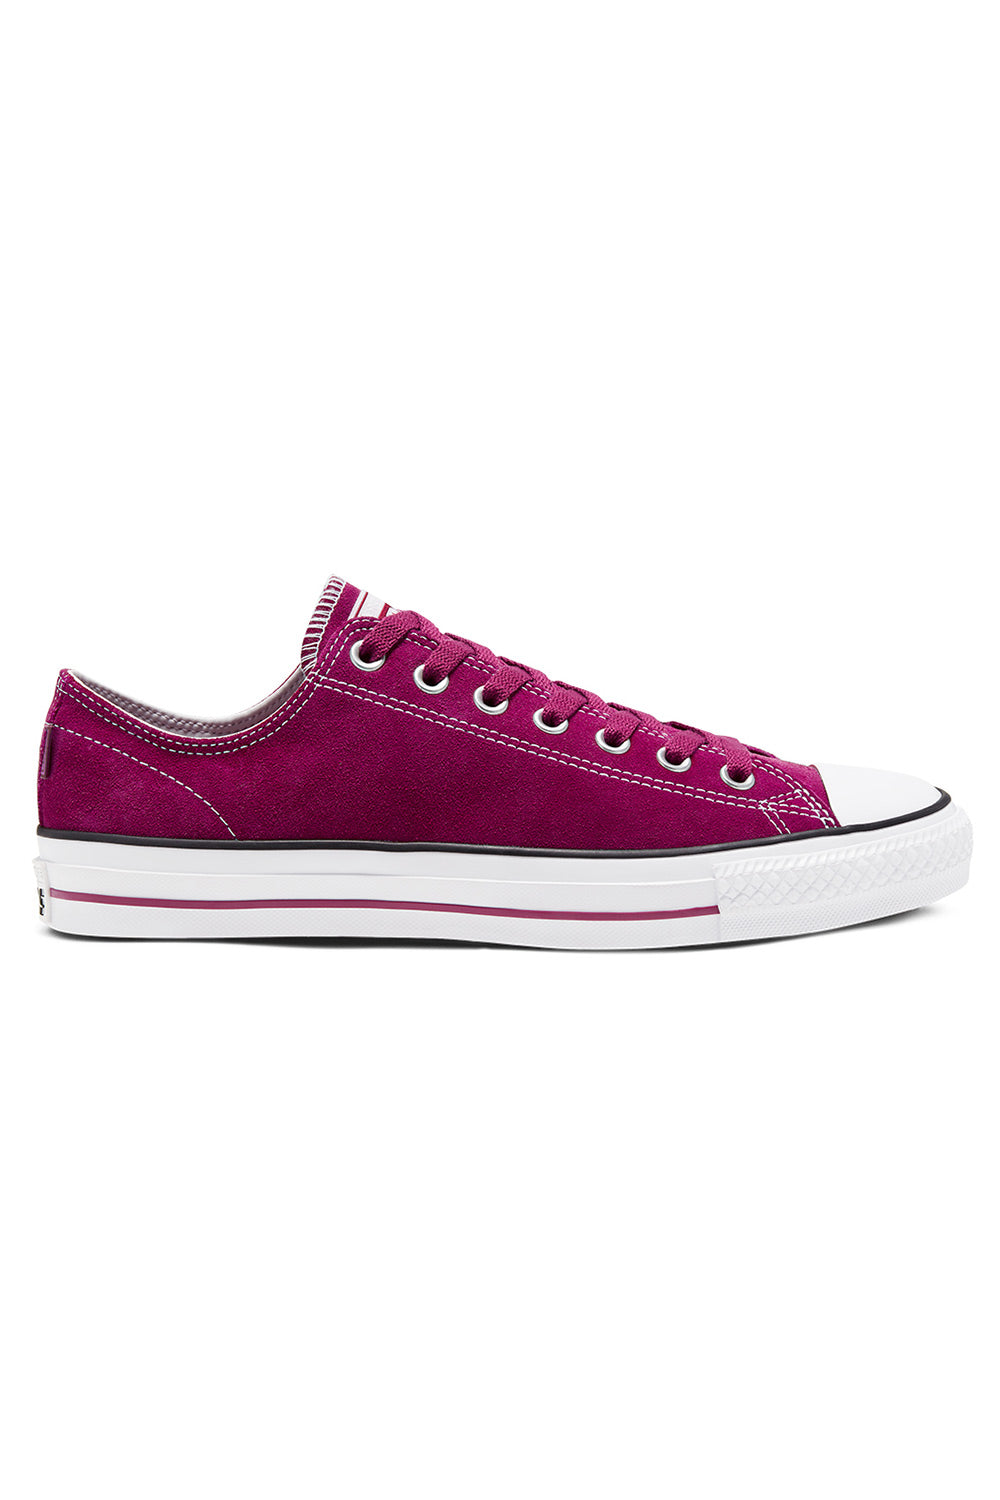 Converse CONS CTAS Pro Low (Suede) - Rose Maroon/White